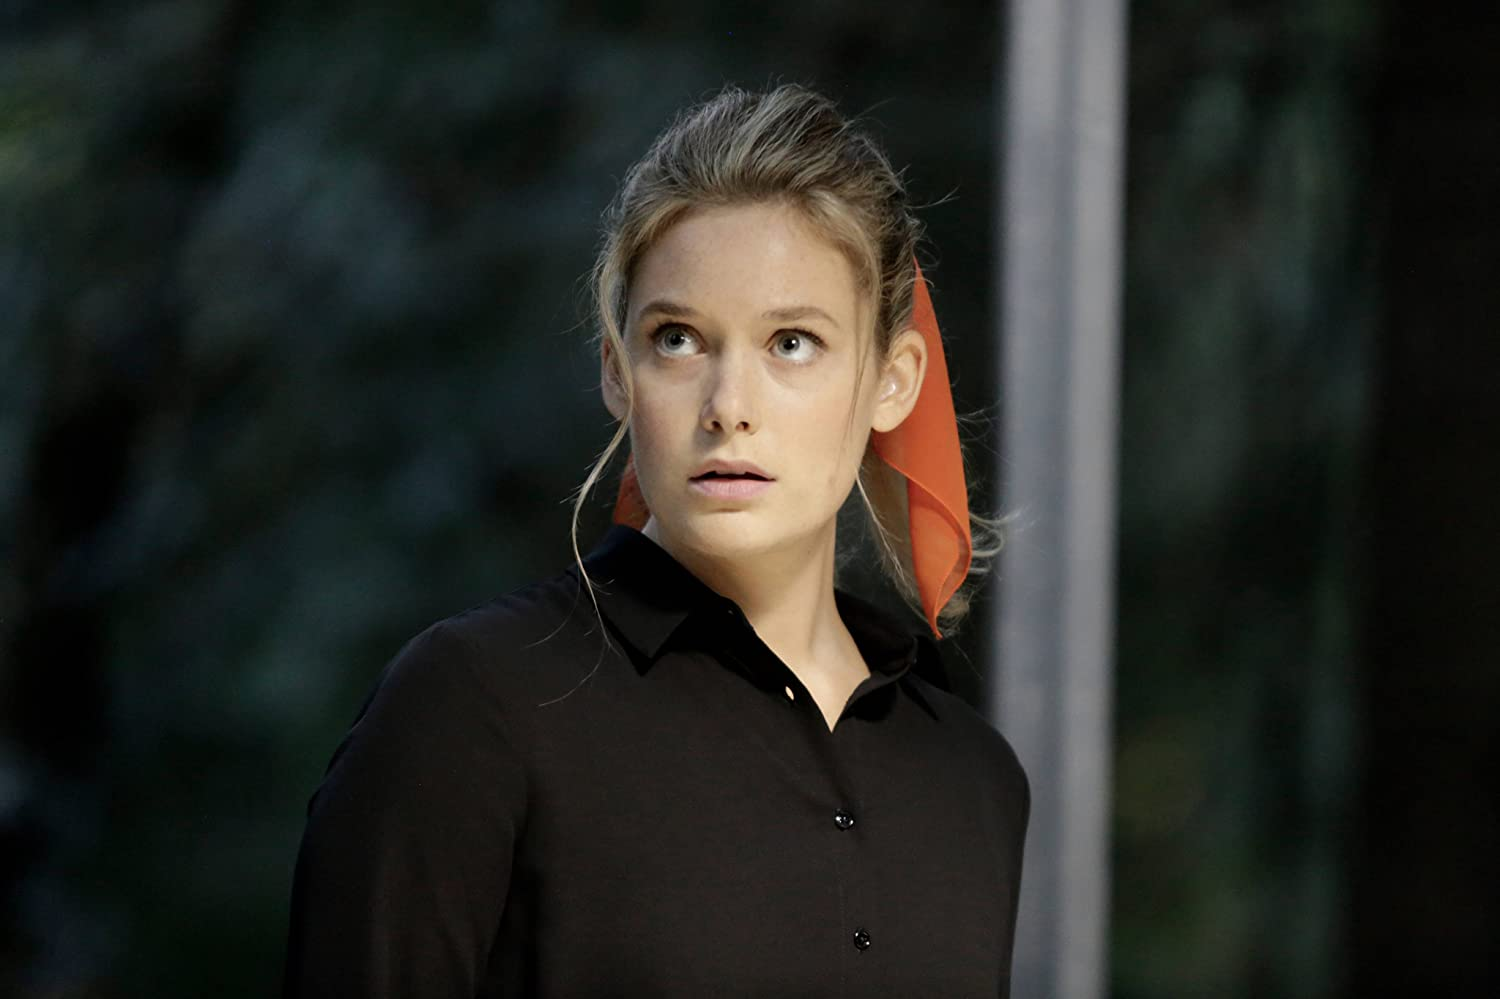 Rachel Keller (actress) Rachel Keller (actress) new images